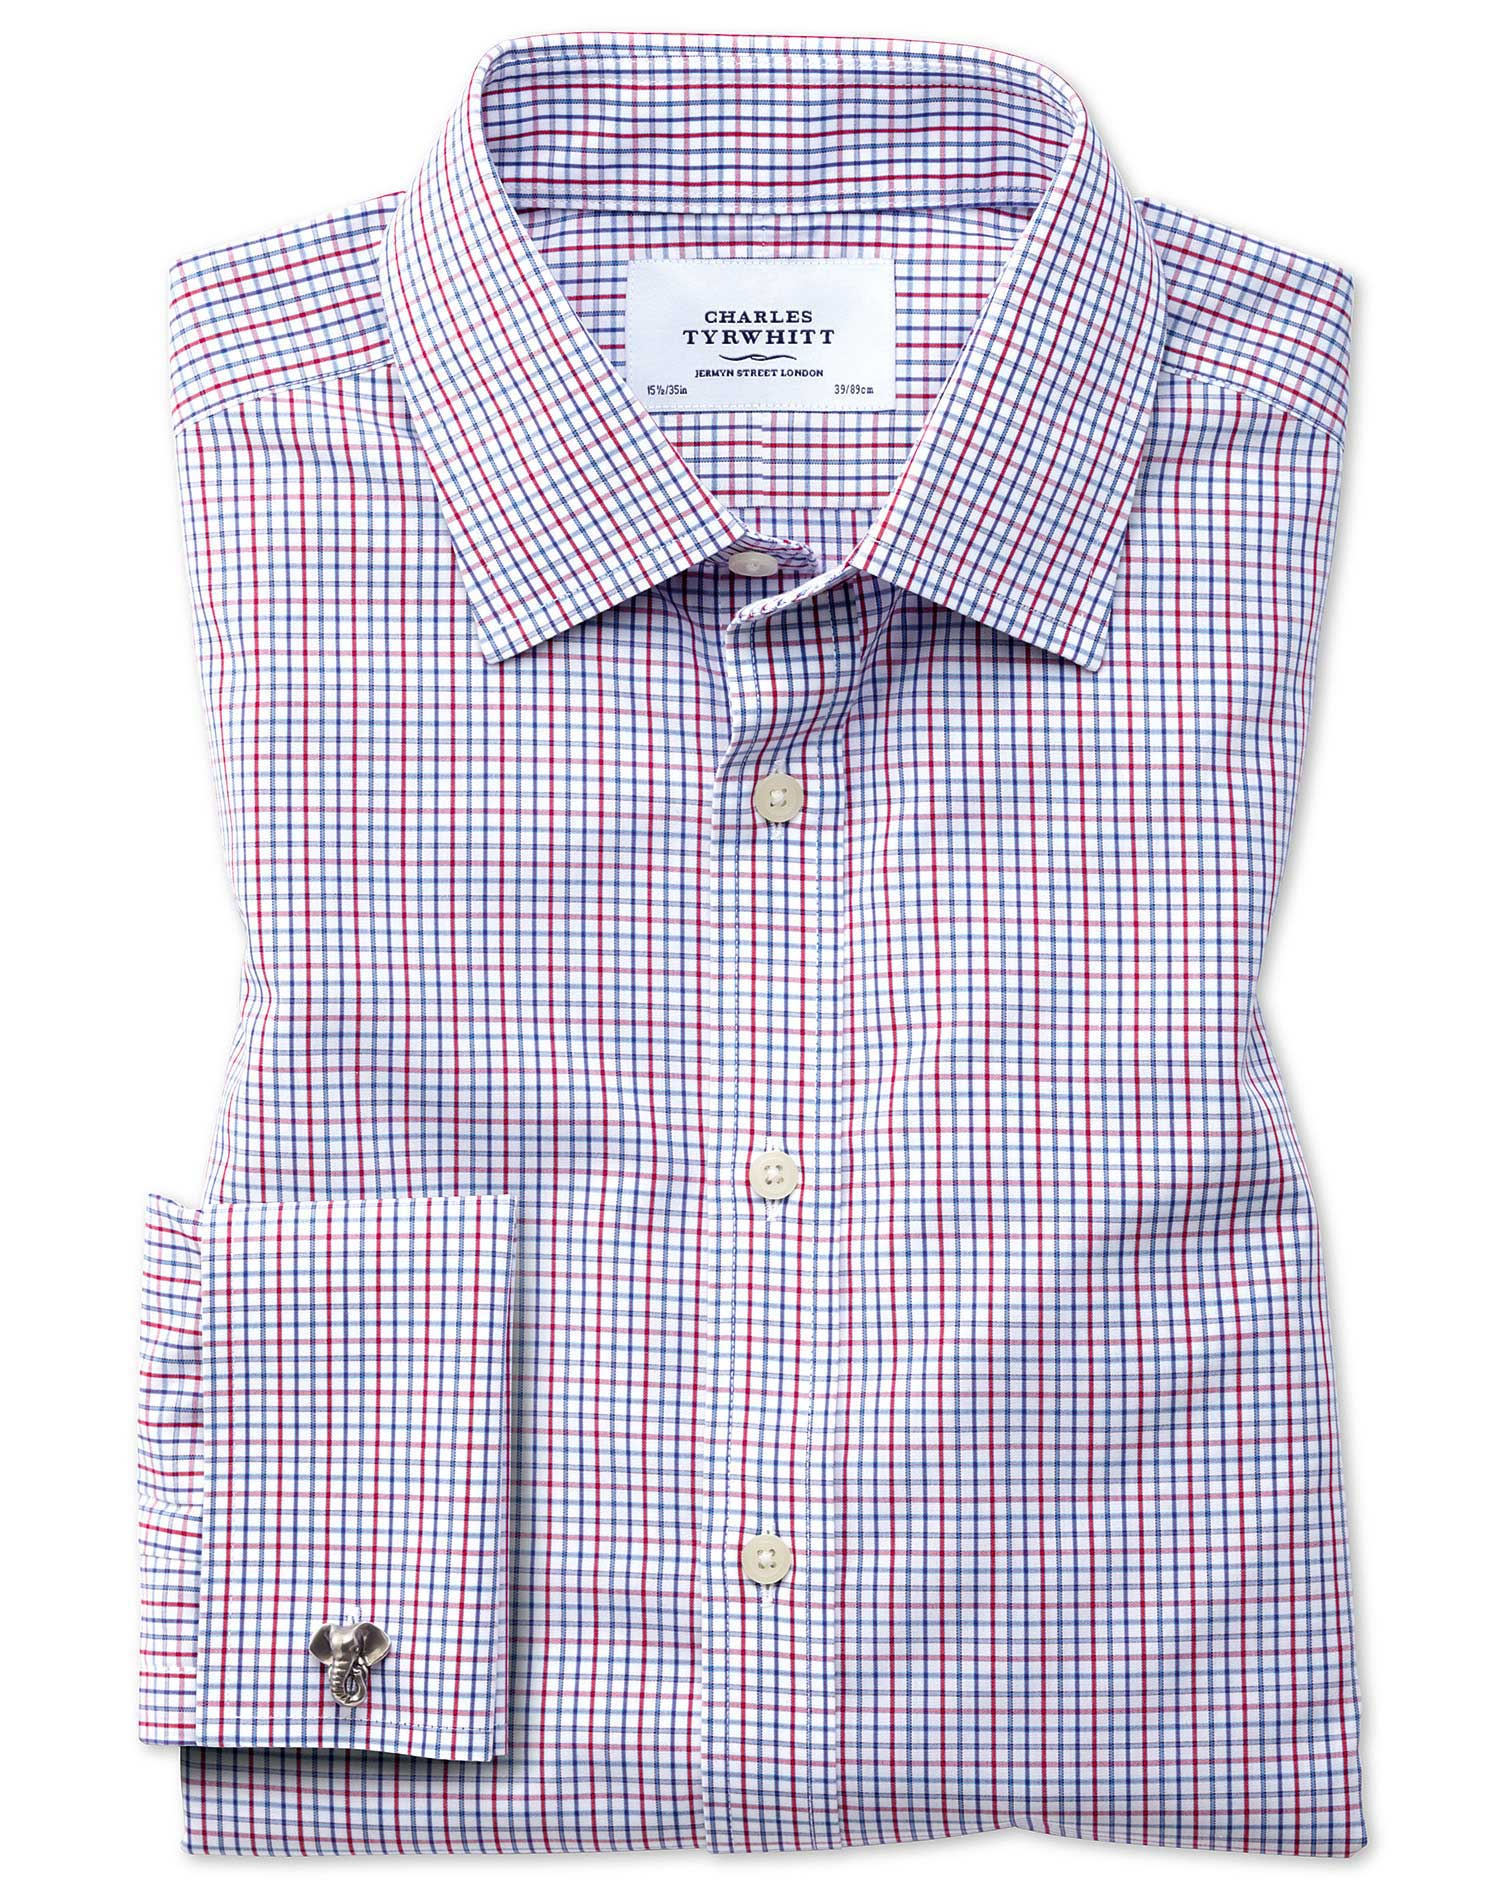 Slim Fit Non-Iron Multi Grid Check Cotton Formal Shirt Double Cuff Size 16.5/36 by Charles Tyrwhitt